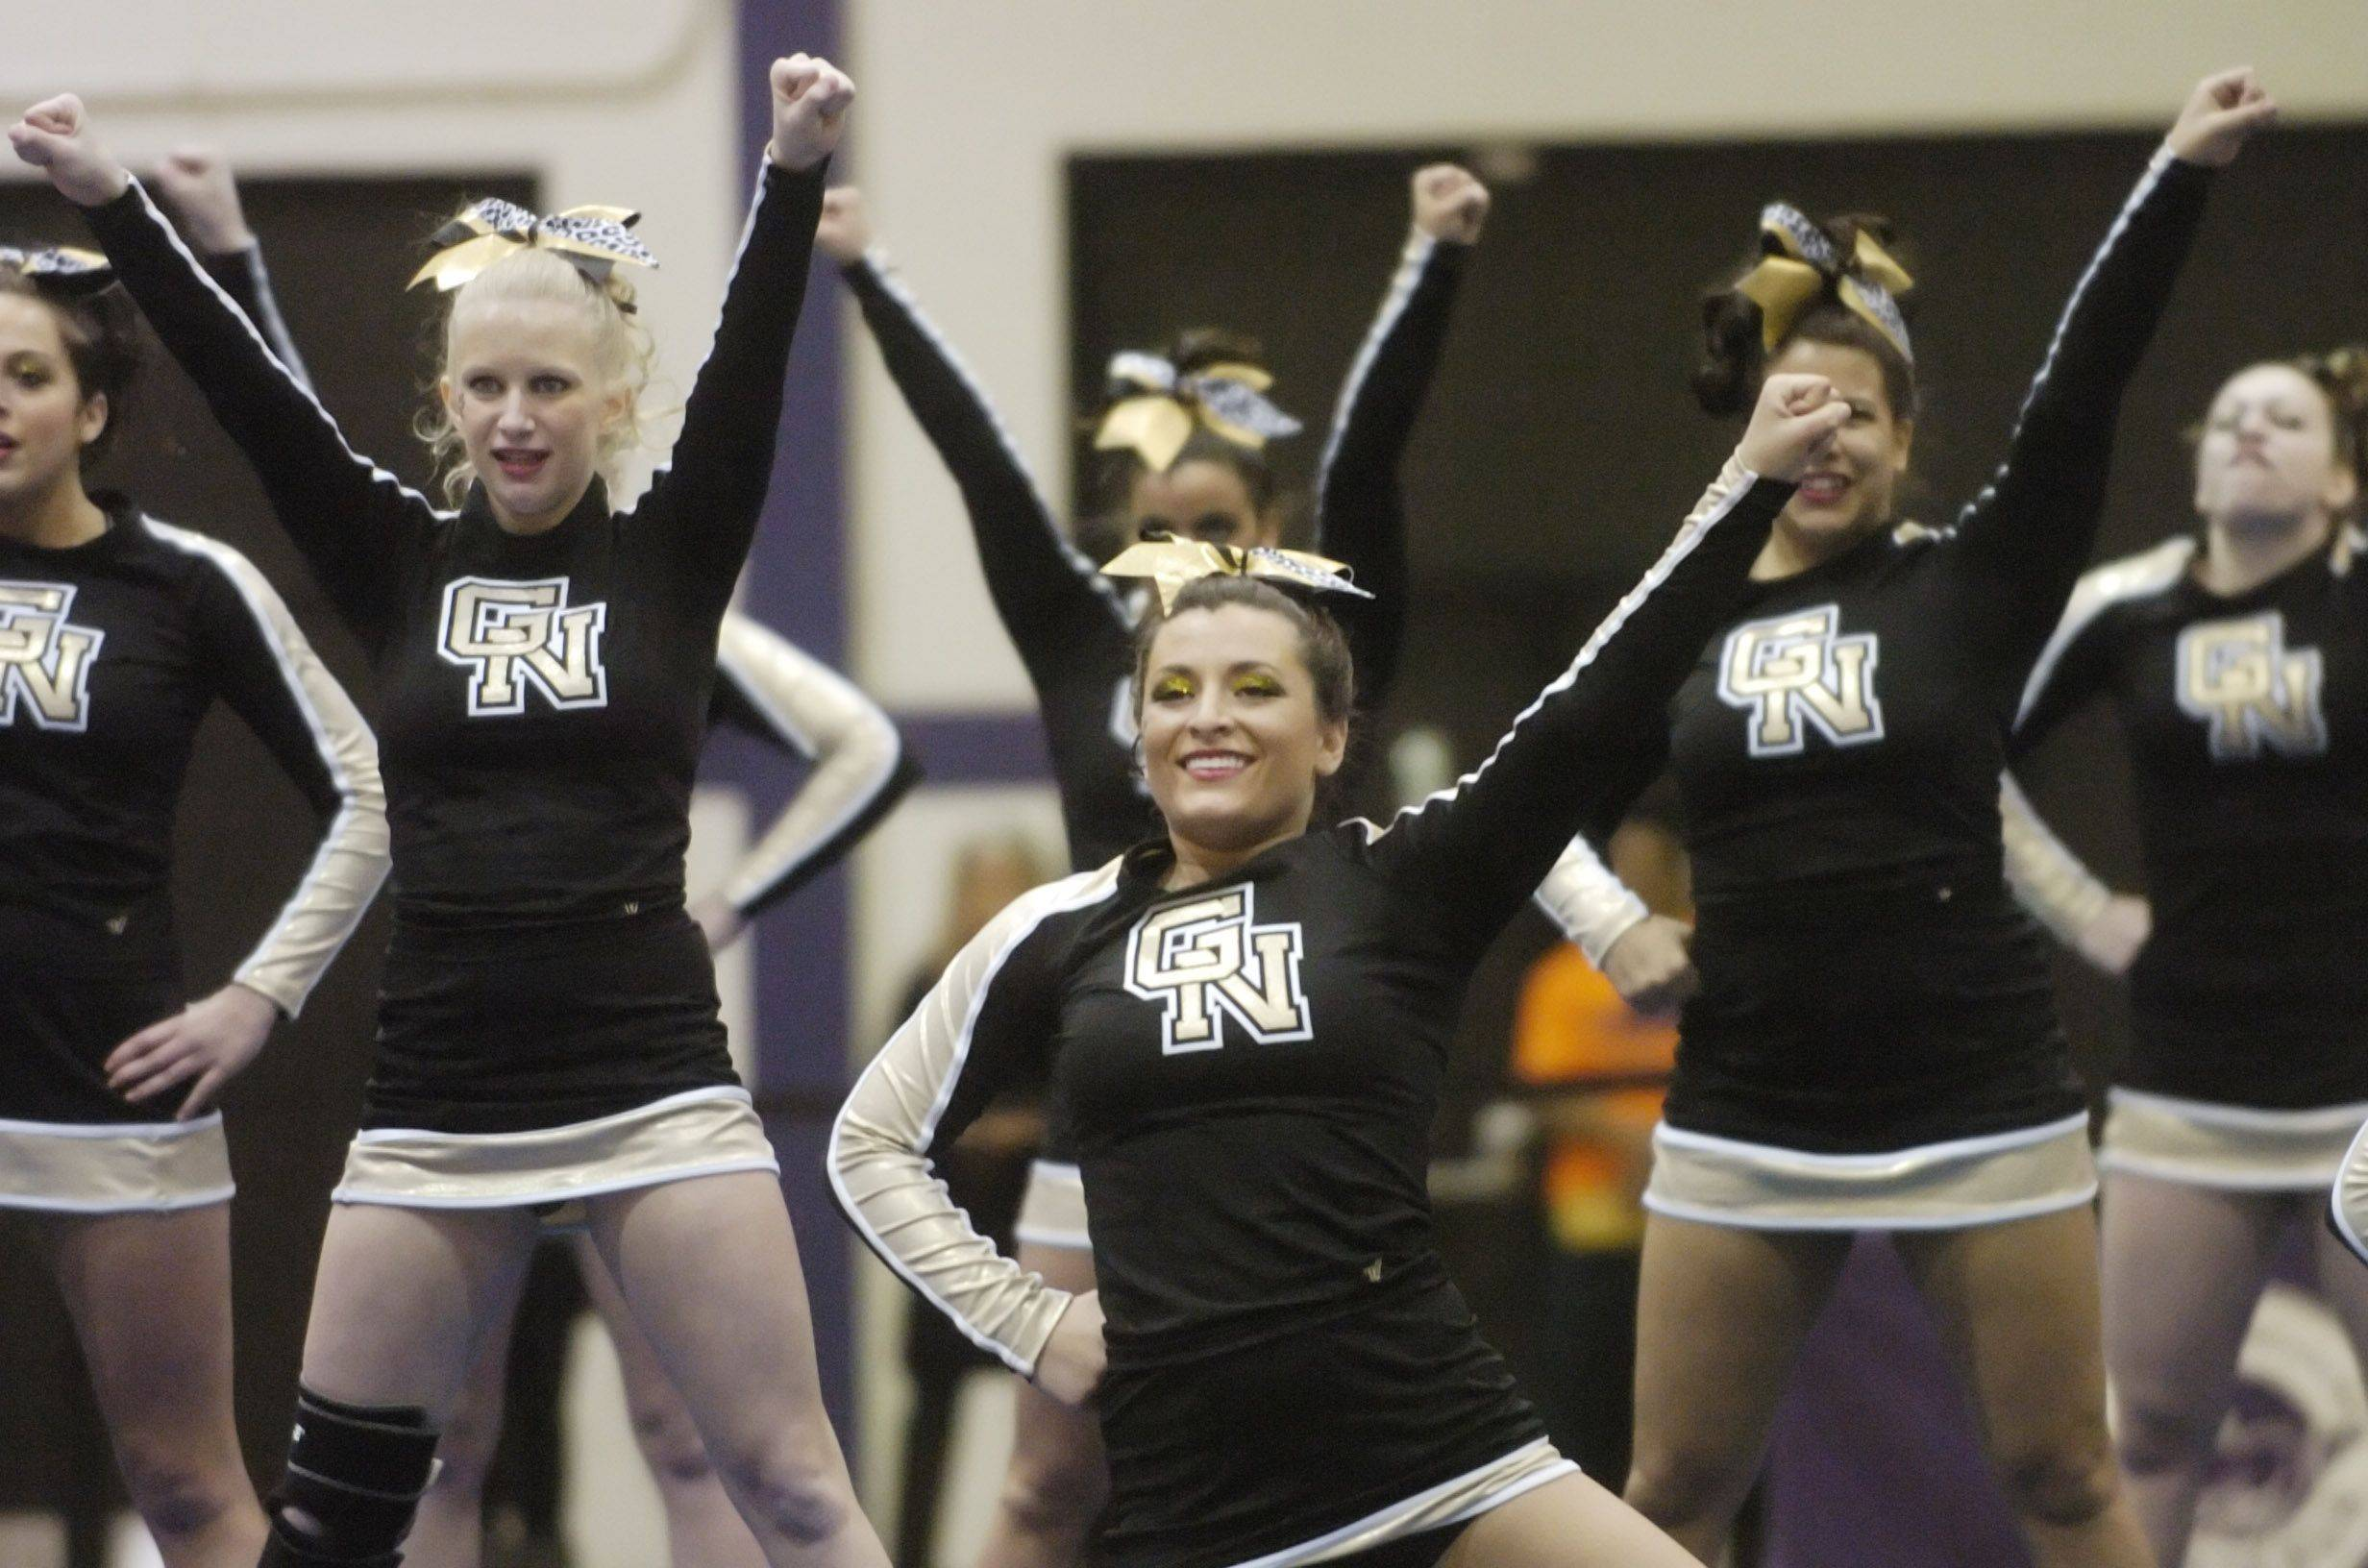 Glenbard North competes during Saturday's cheerleading sectional hosted by Rolling Meadows High School.